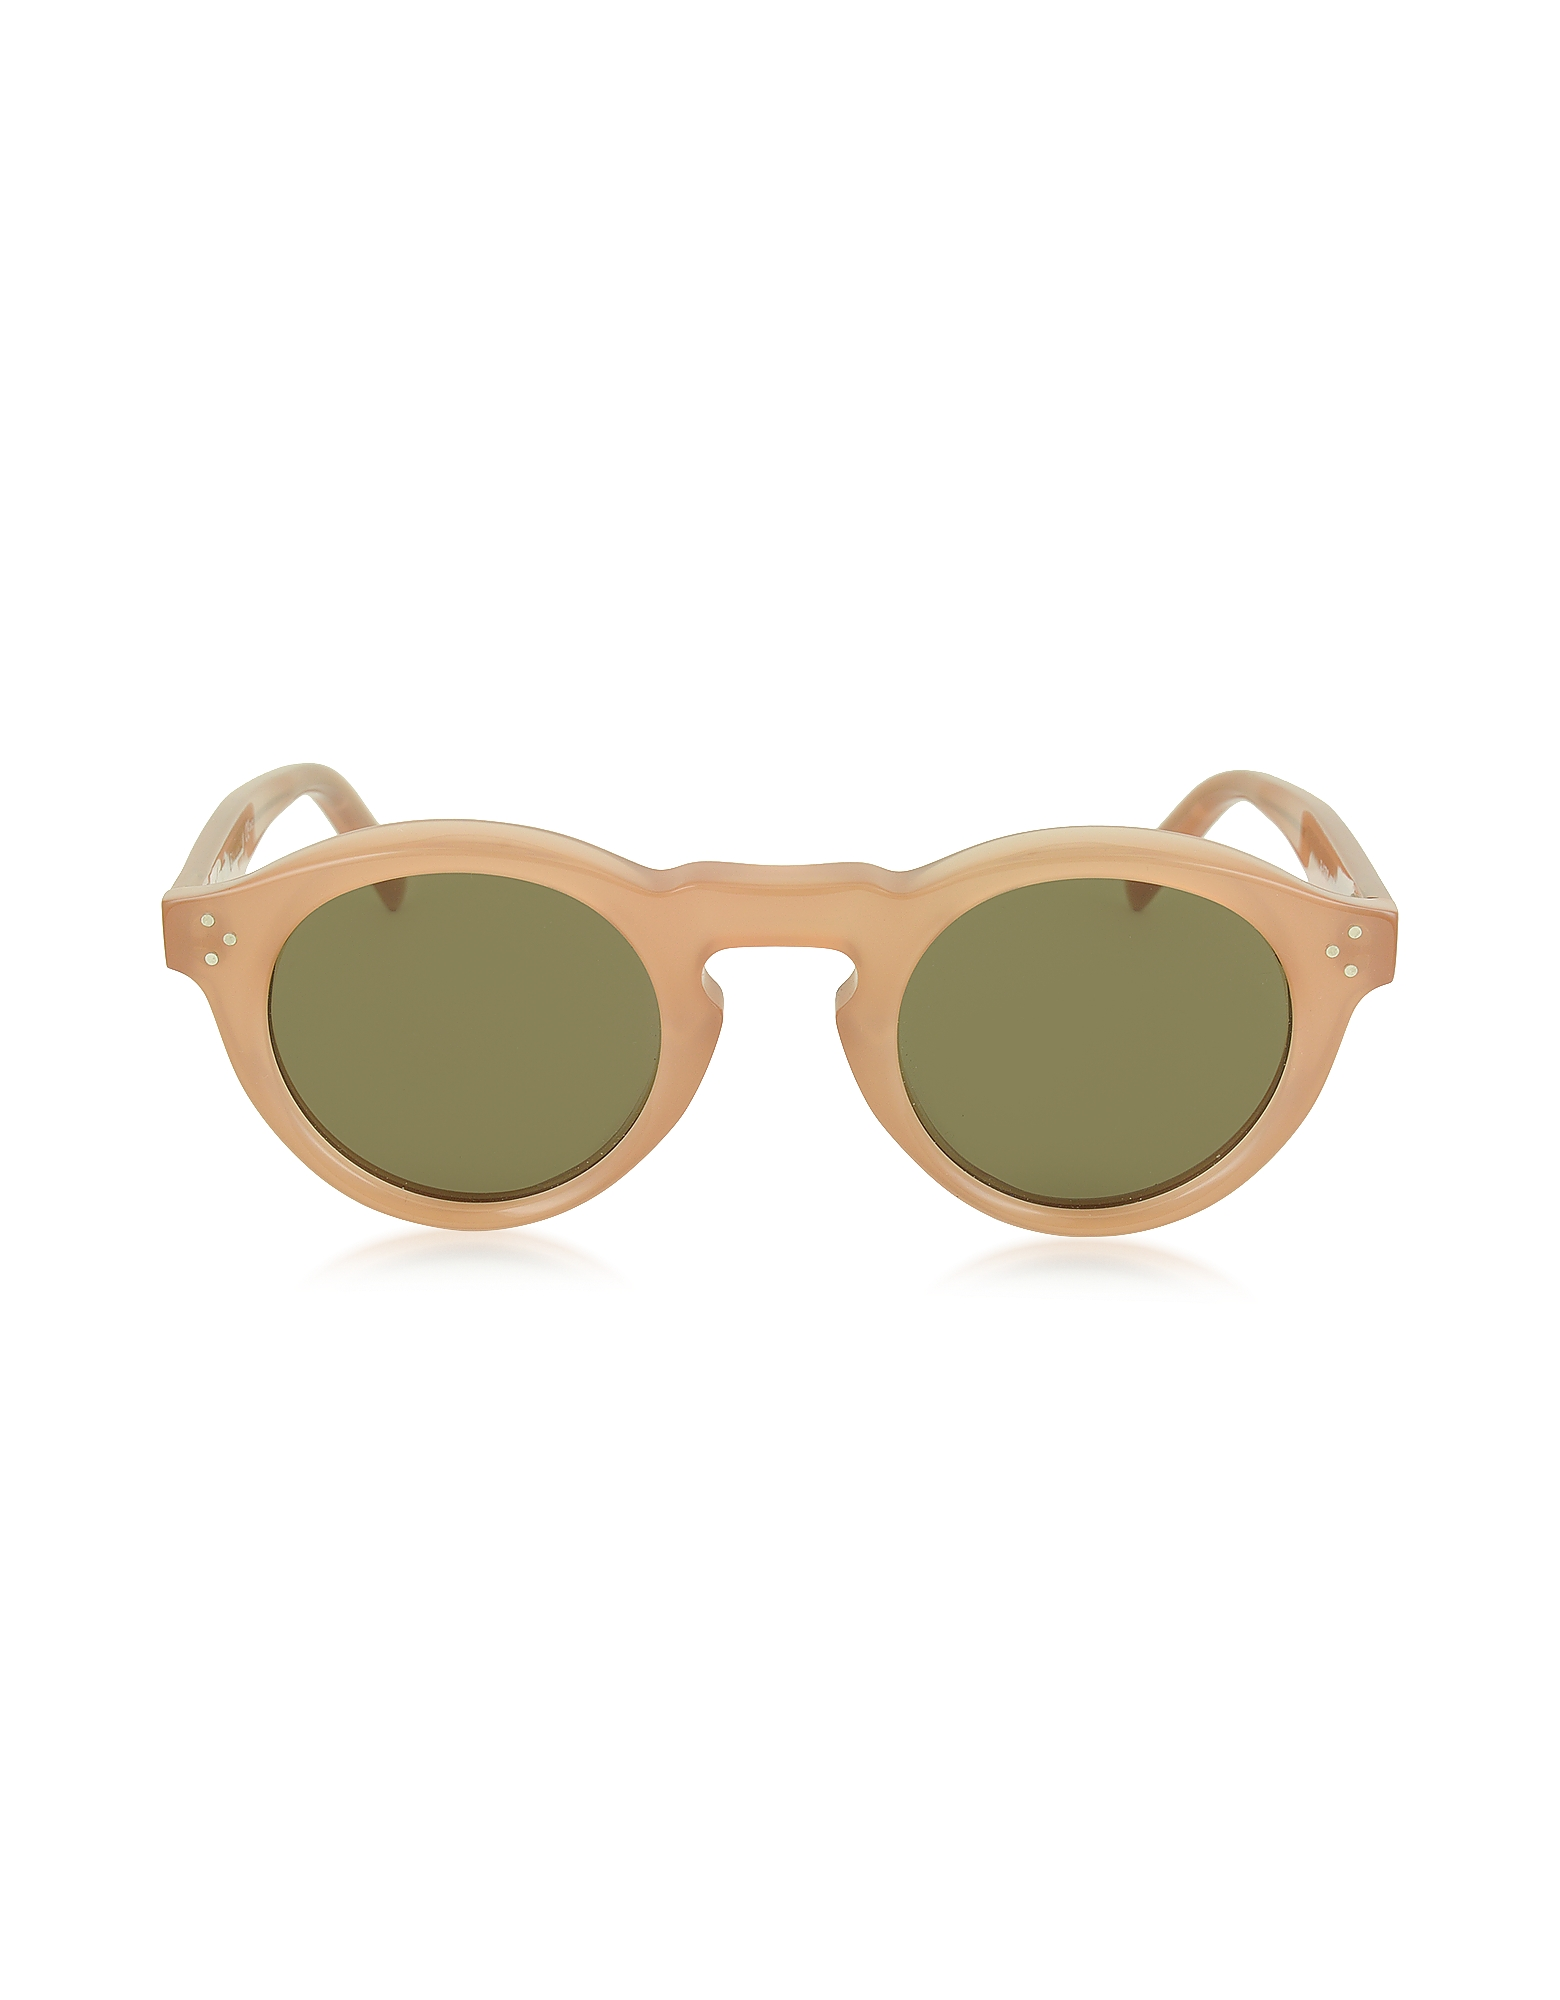 Céline Sunglasses, BEVEL CL 41370/S Acetate Round Unisex Sunglasses